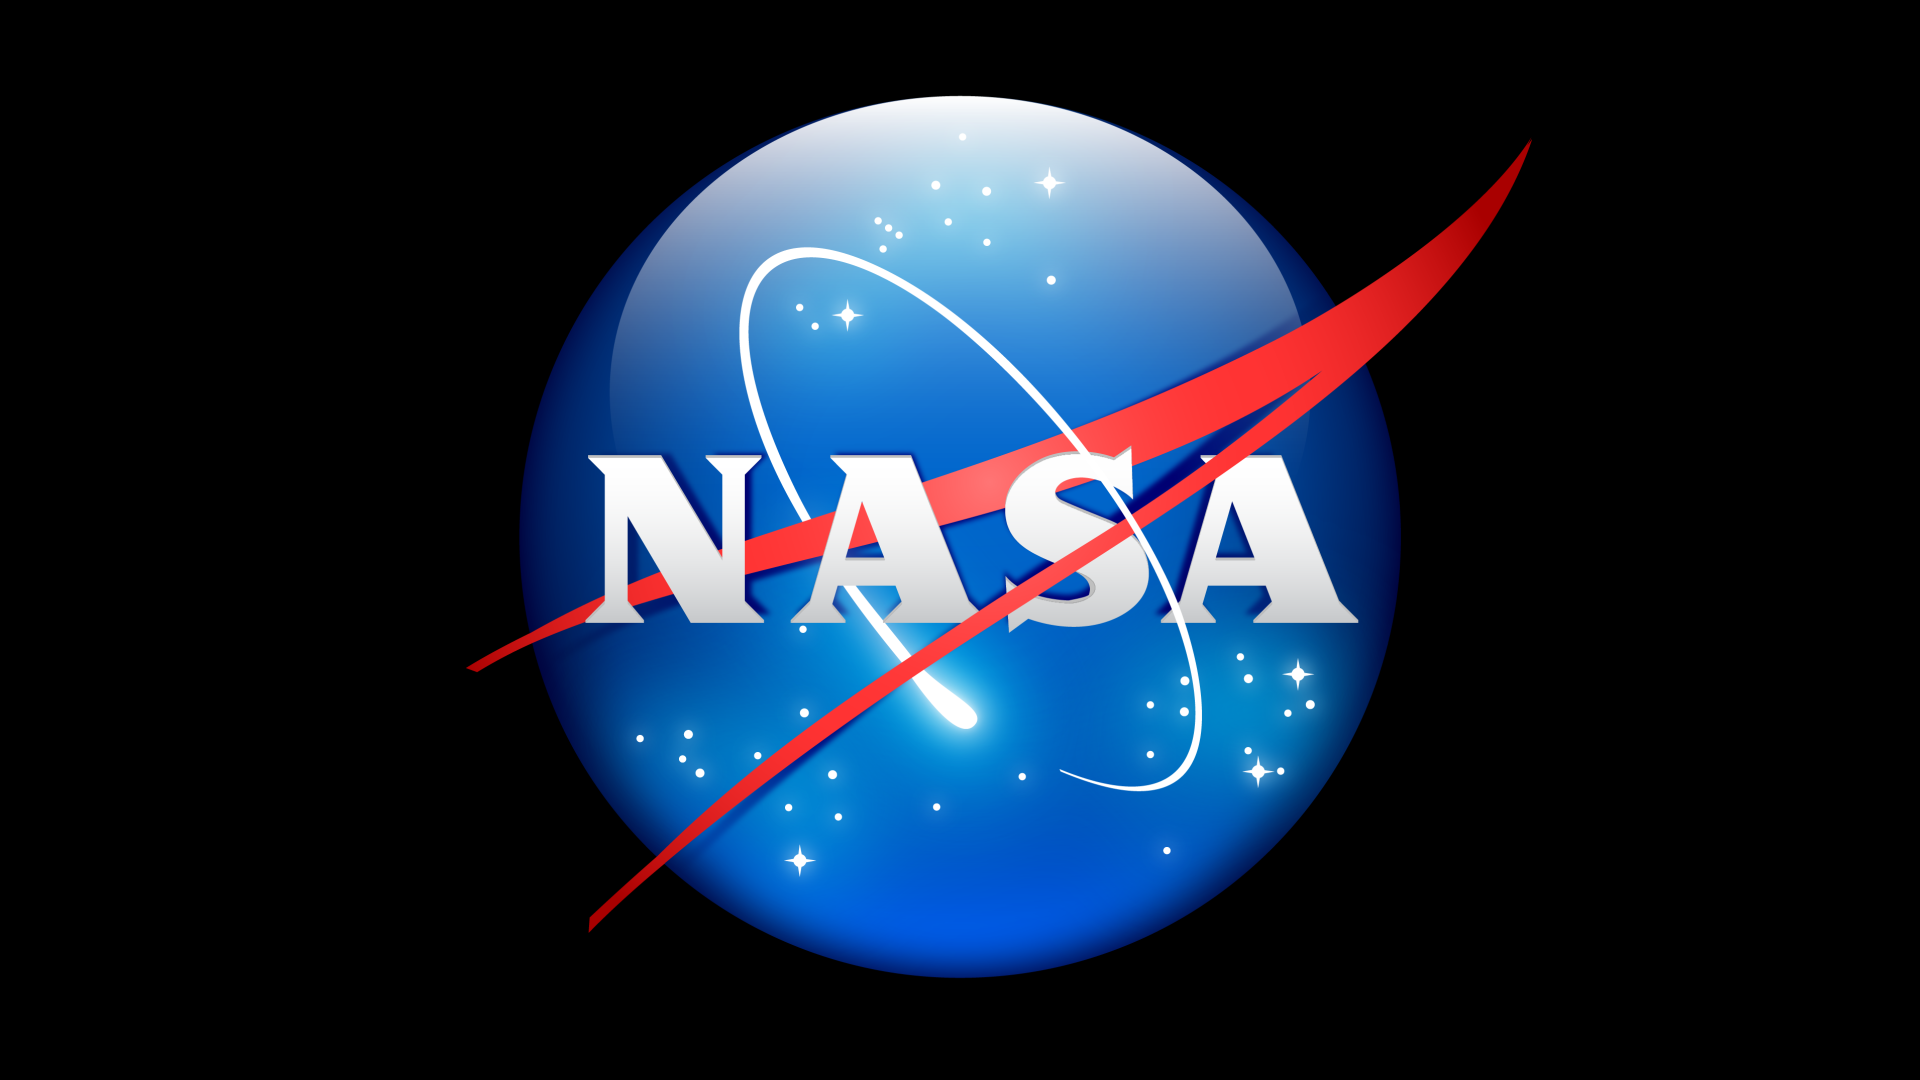 Black background NASA wallpapers and images   wallpapers pictures 1920x1080